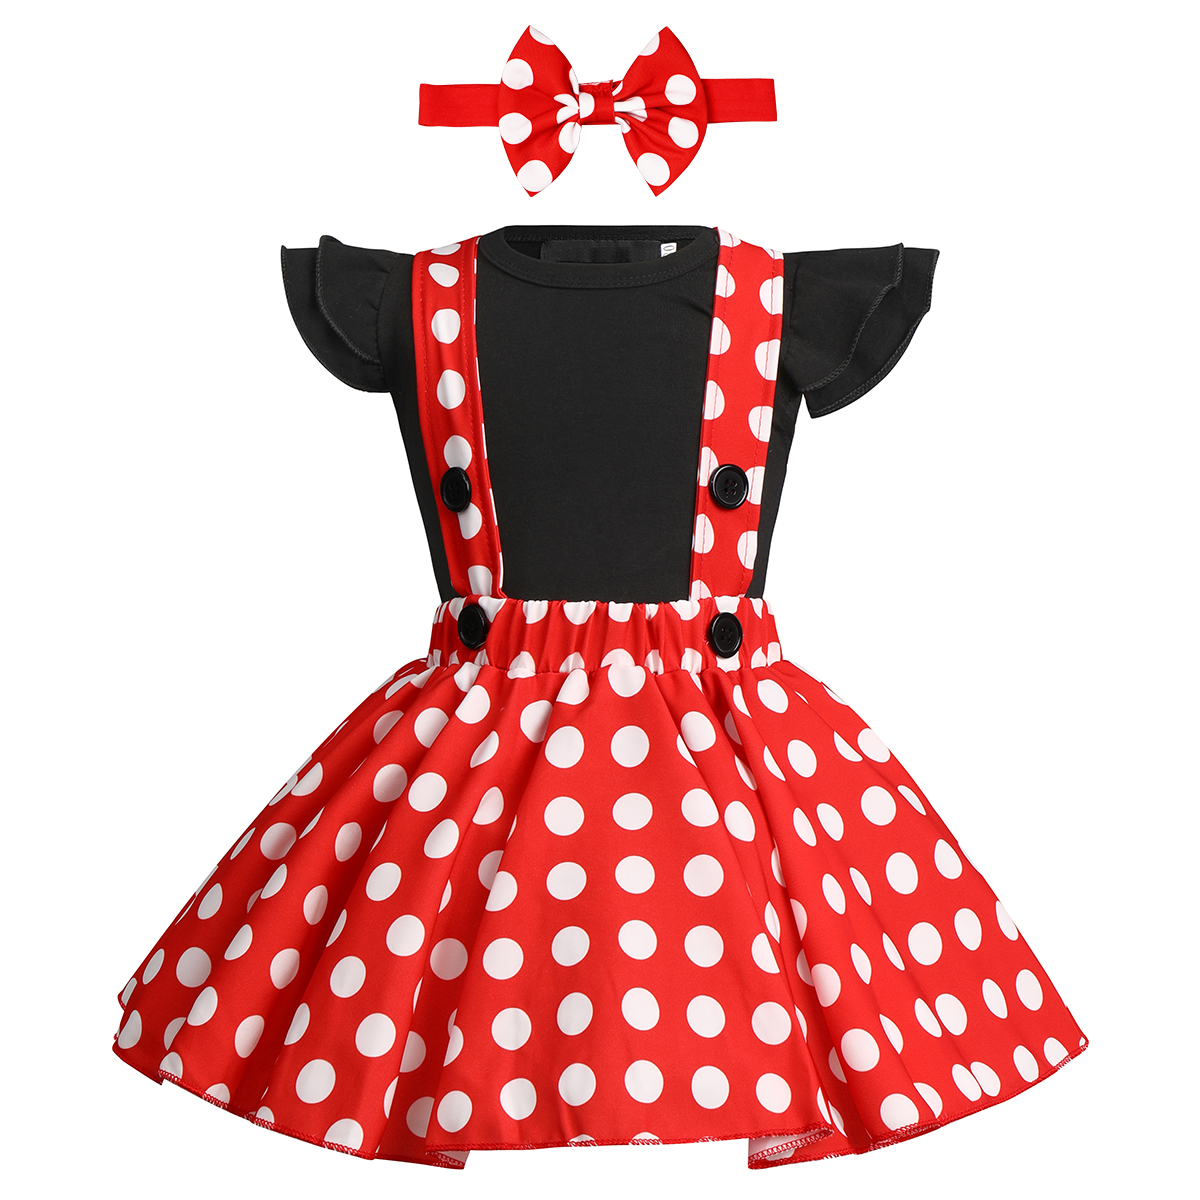 Cute Baby Girl Clothes Set Minnie Dress Cake Smash Outfit Girl Baby Birthday Clothes Suspender Girls Clothes for Photo Shoot|Clothing Sets| |  - title=